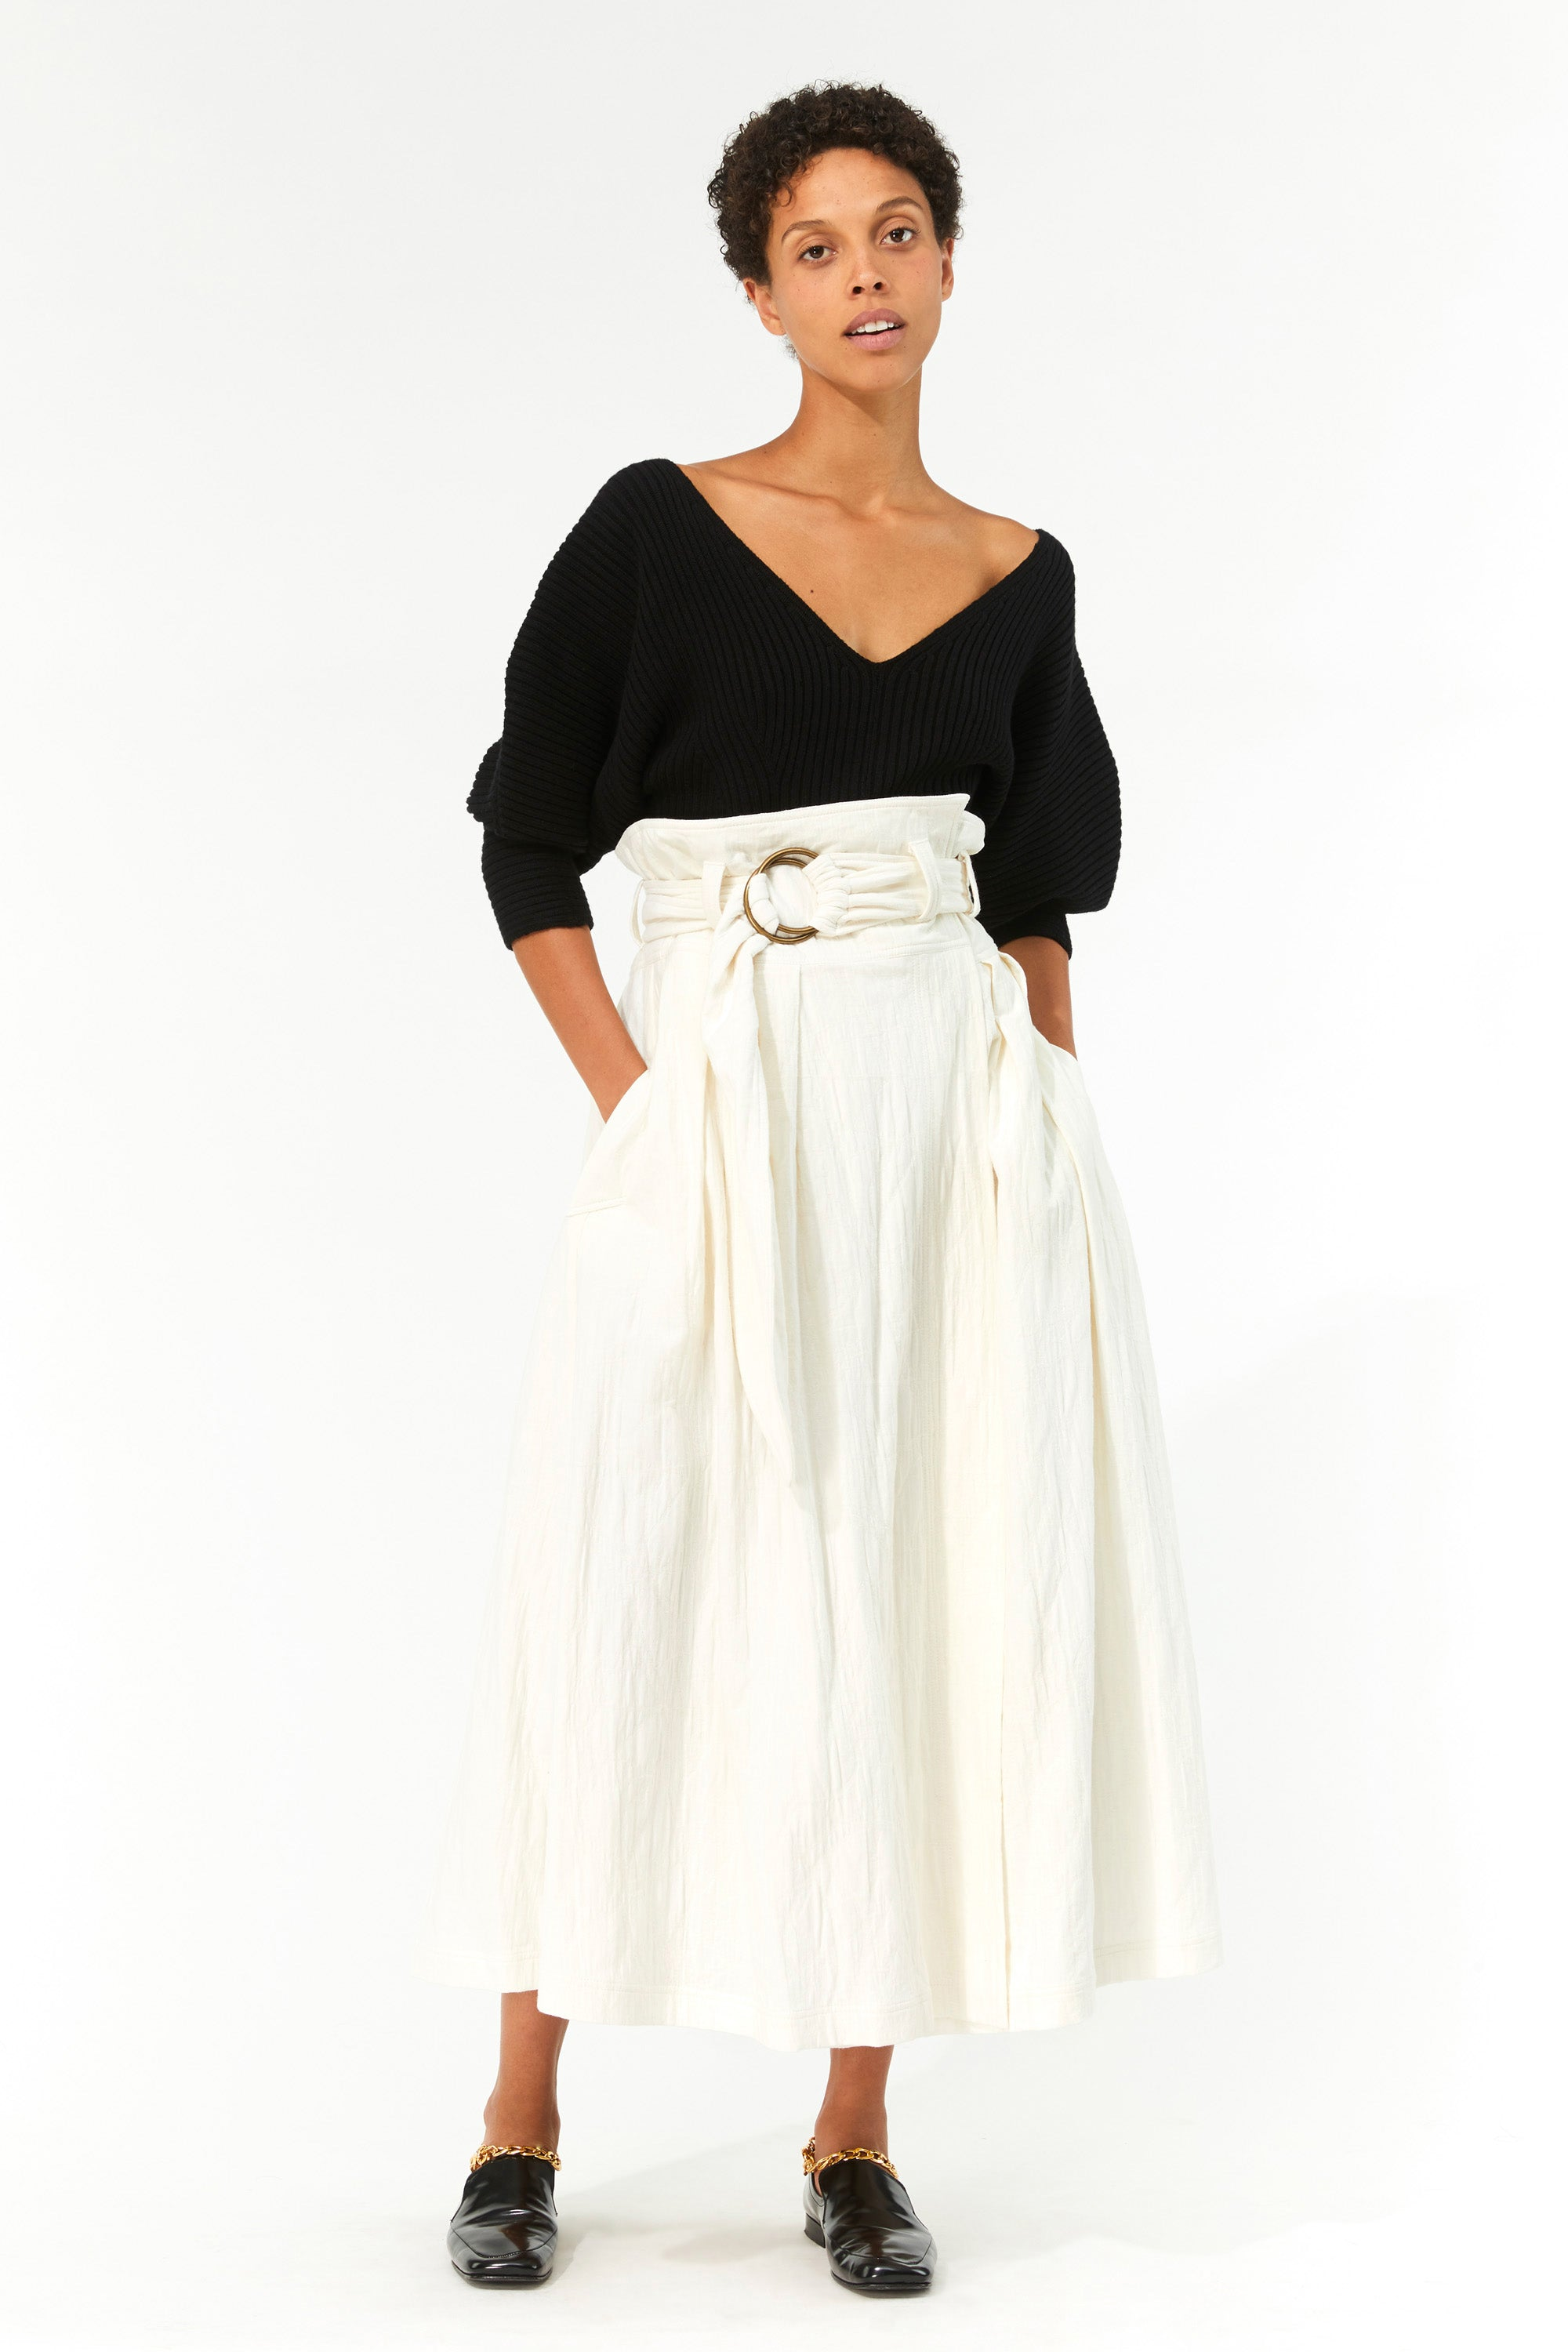 Mara Hoffman Ivory Esperanza Skirt in organic cotton and linen (front)